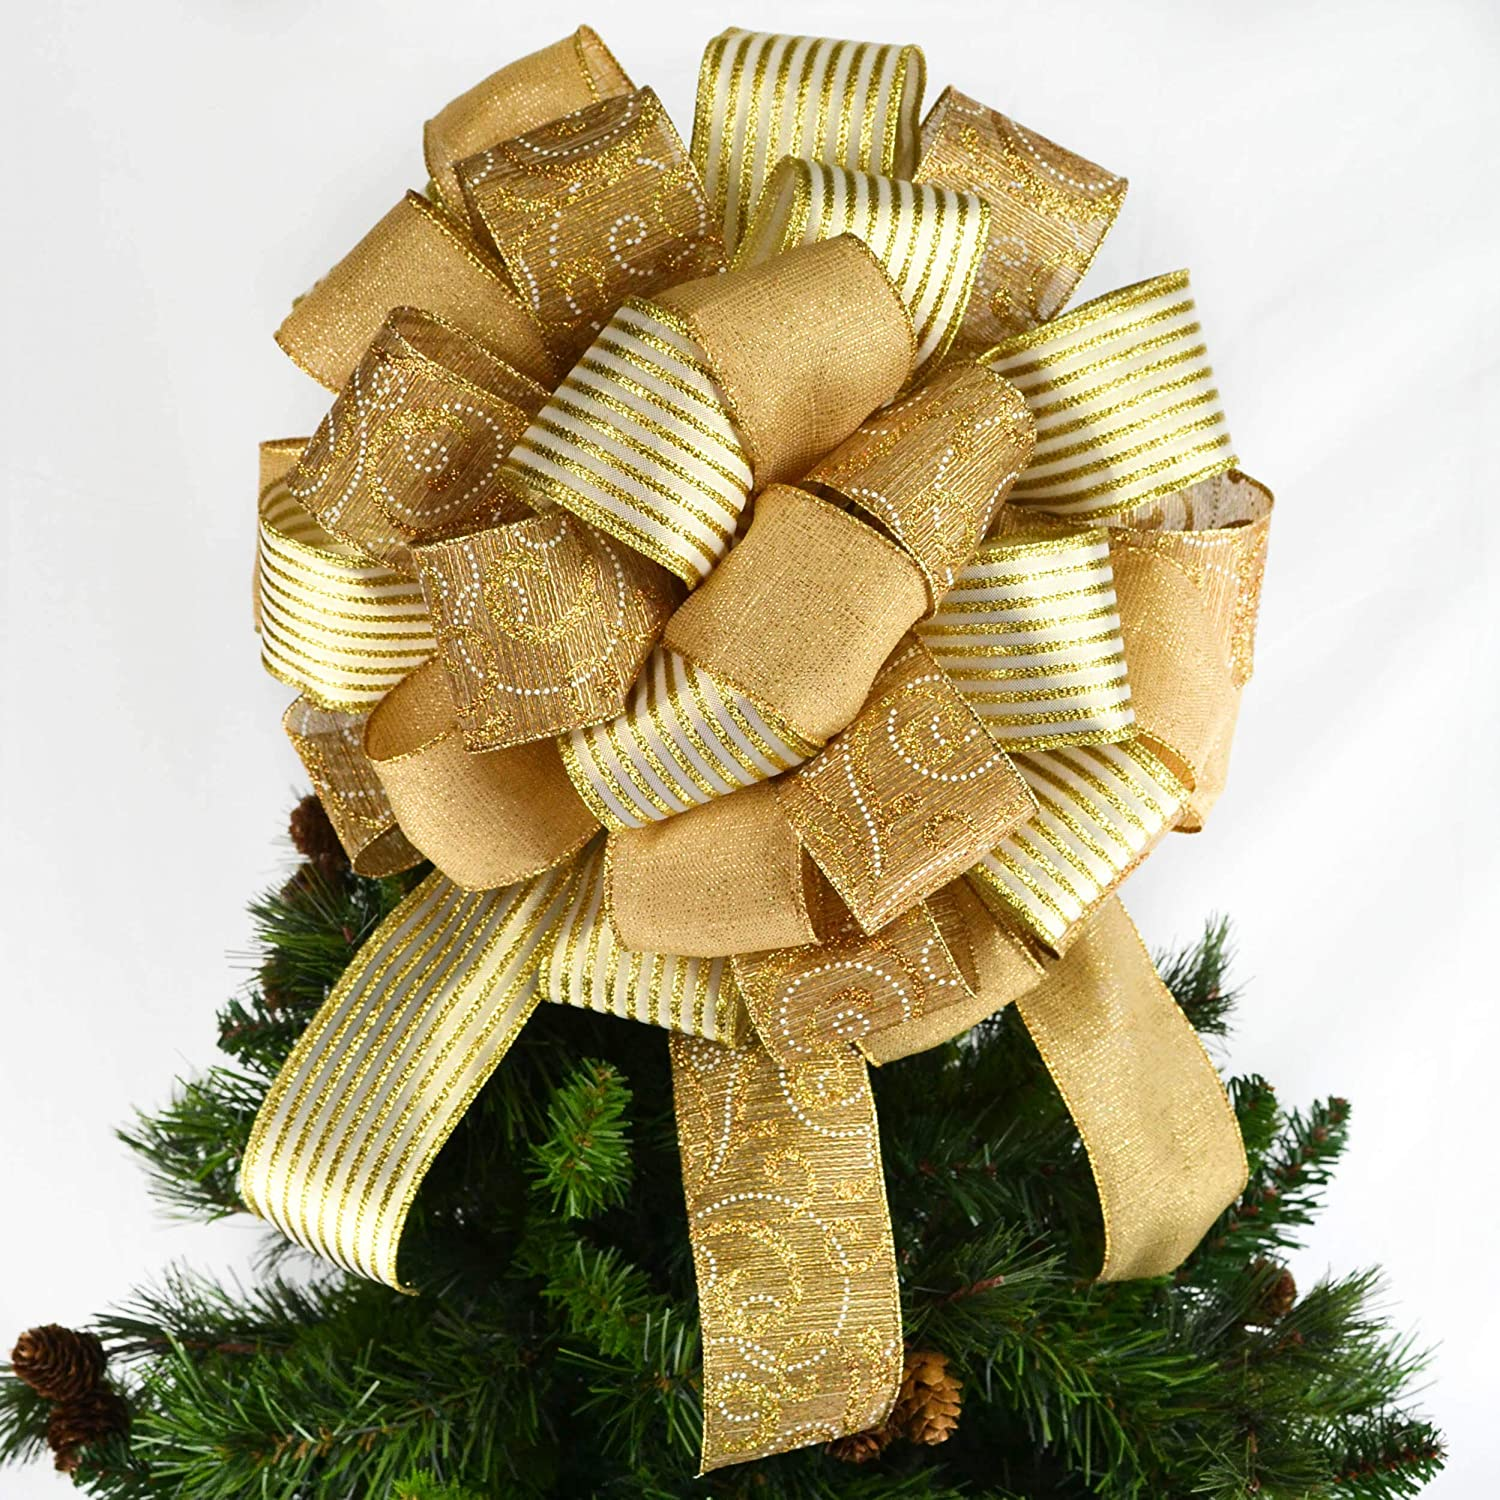 Solid Gold Tree Topper Bows Present Christmas Big Max 70% OFF Nippon regular agency Bow B